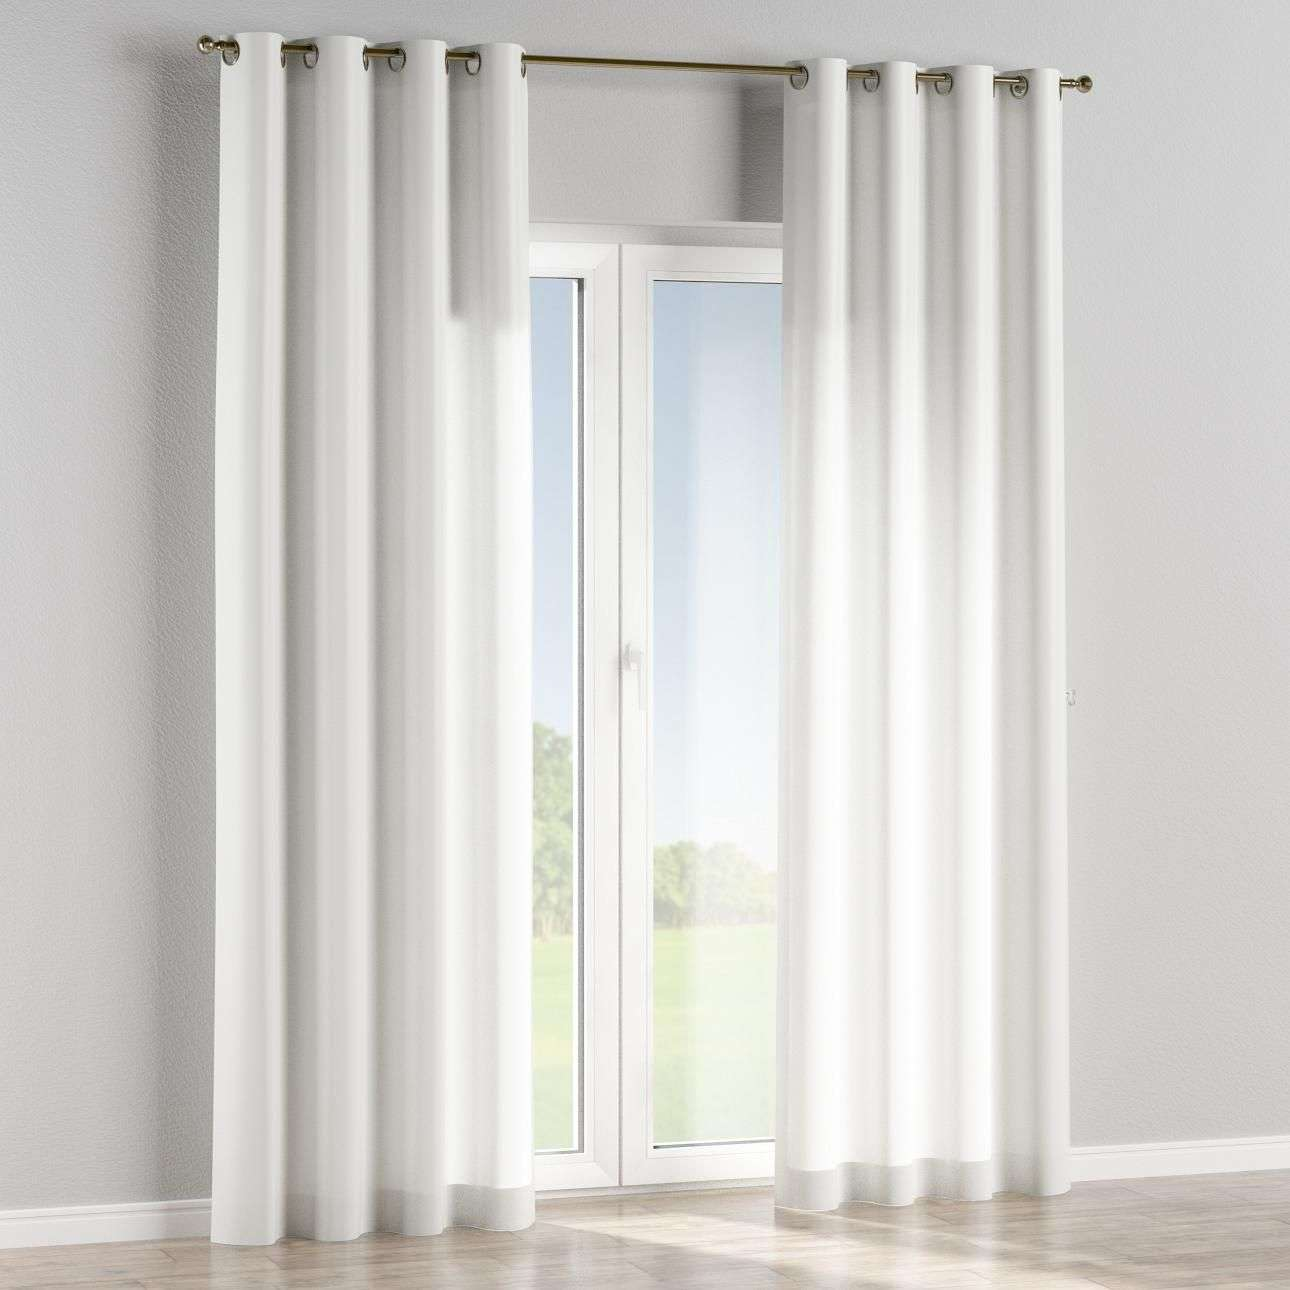 Eyelet curtains in collection Venice, fabric: 140-52